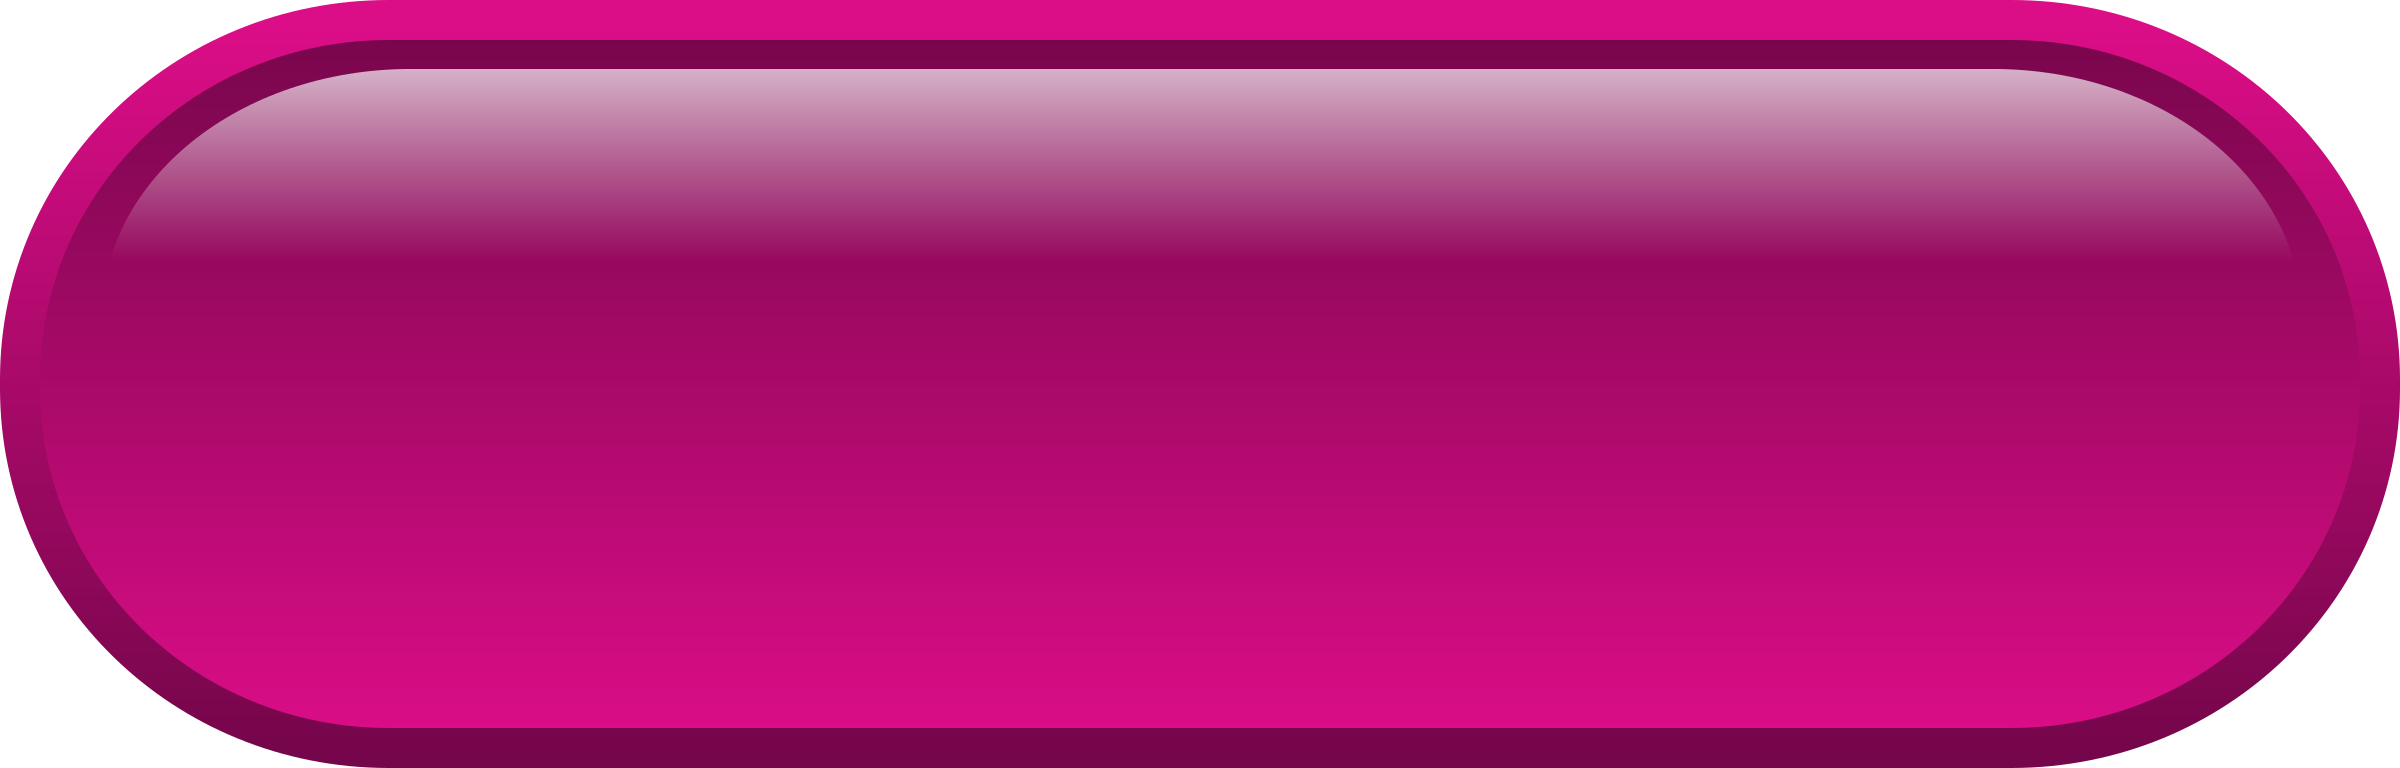 Pink Purple Button Maroon Violet Magenta Now PNG Image